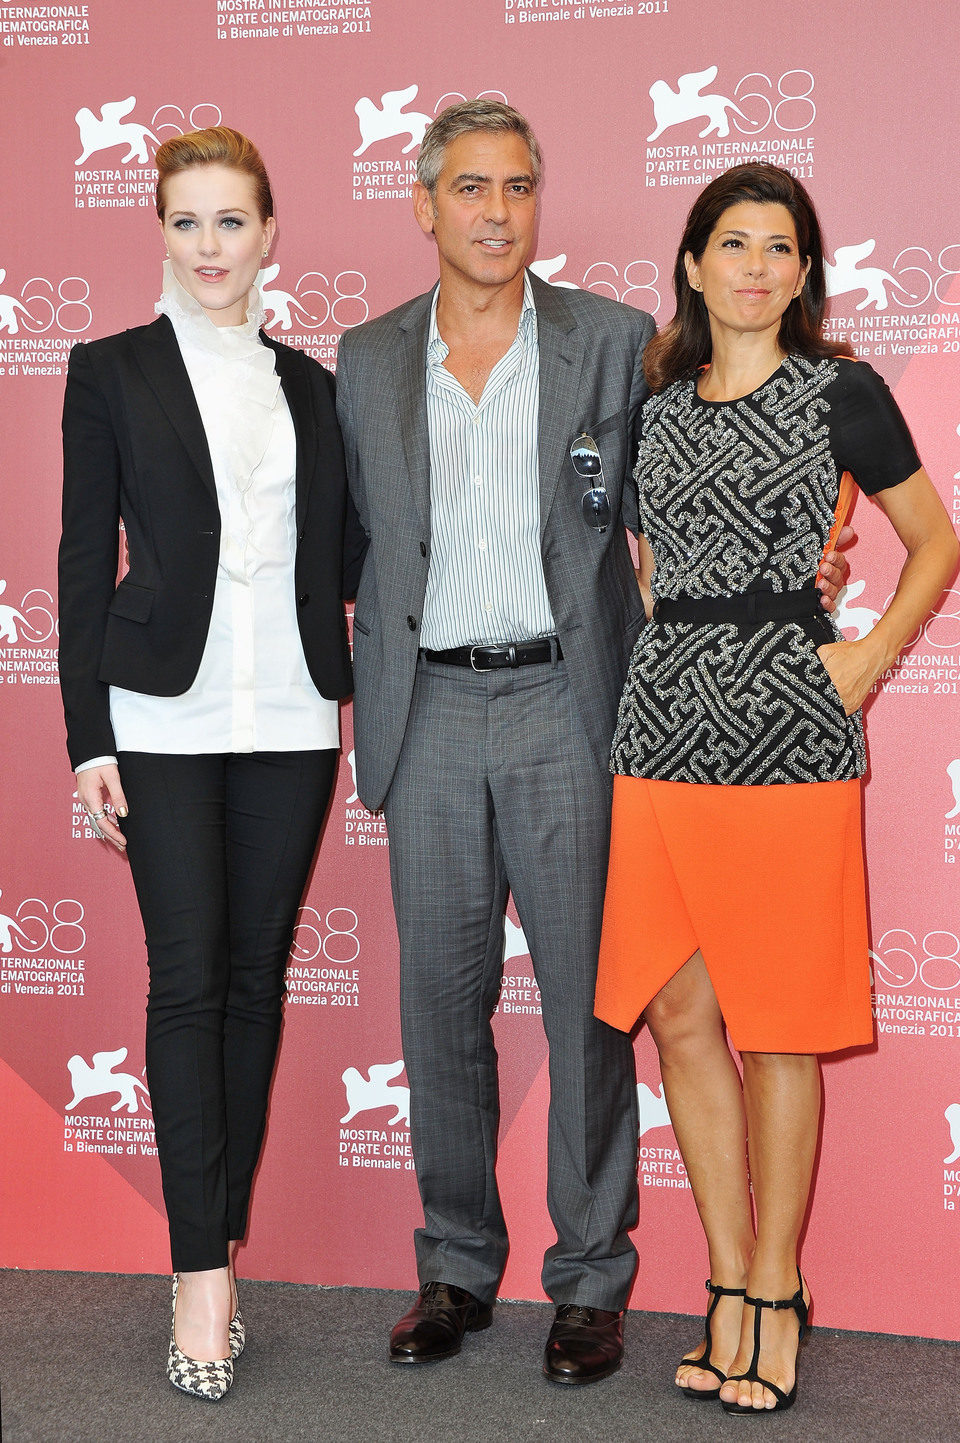 Evan Rachel Wood, George Clooney y Marisa Tomei presentan en el Festival de Venecia 'The Ides of March'